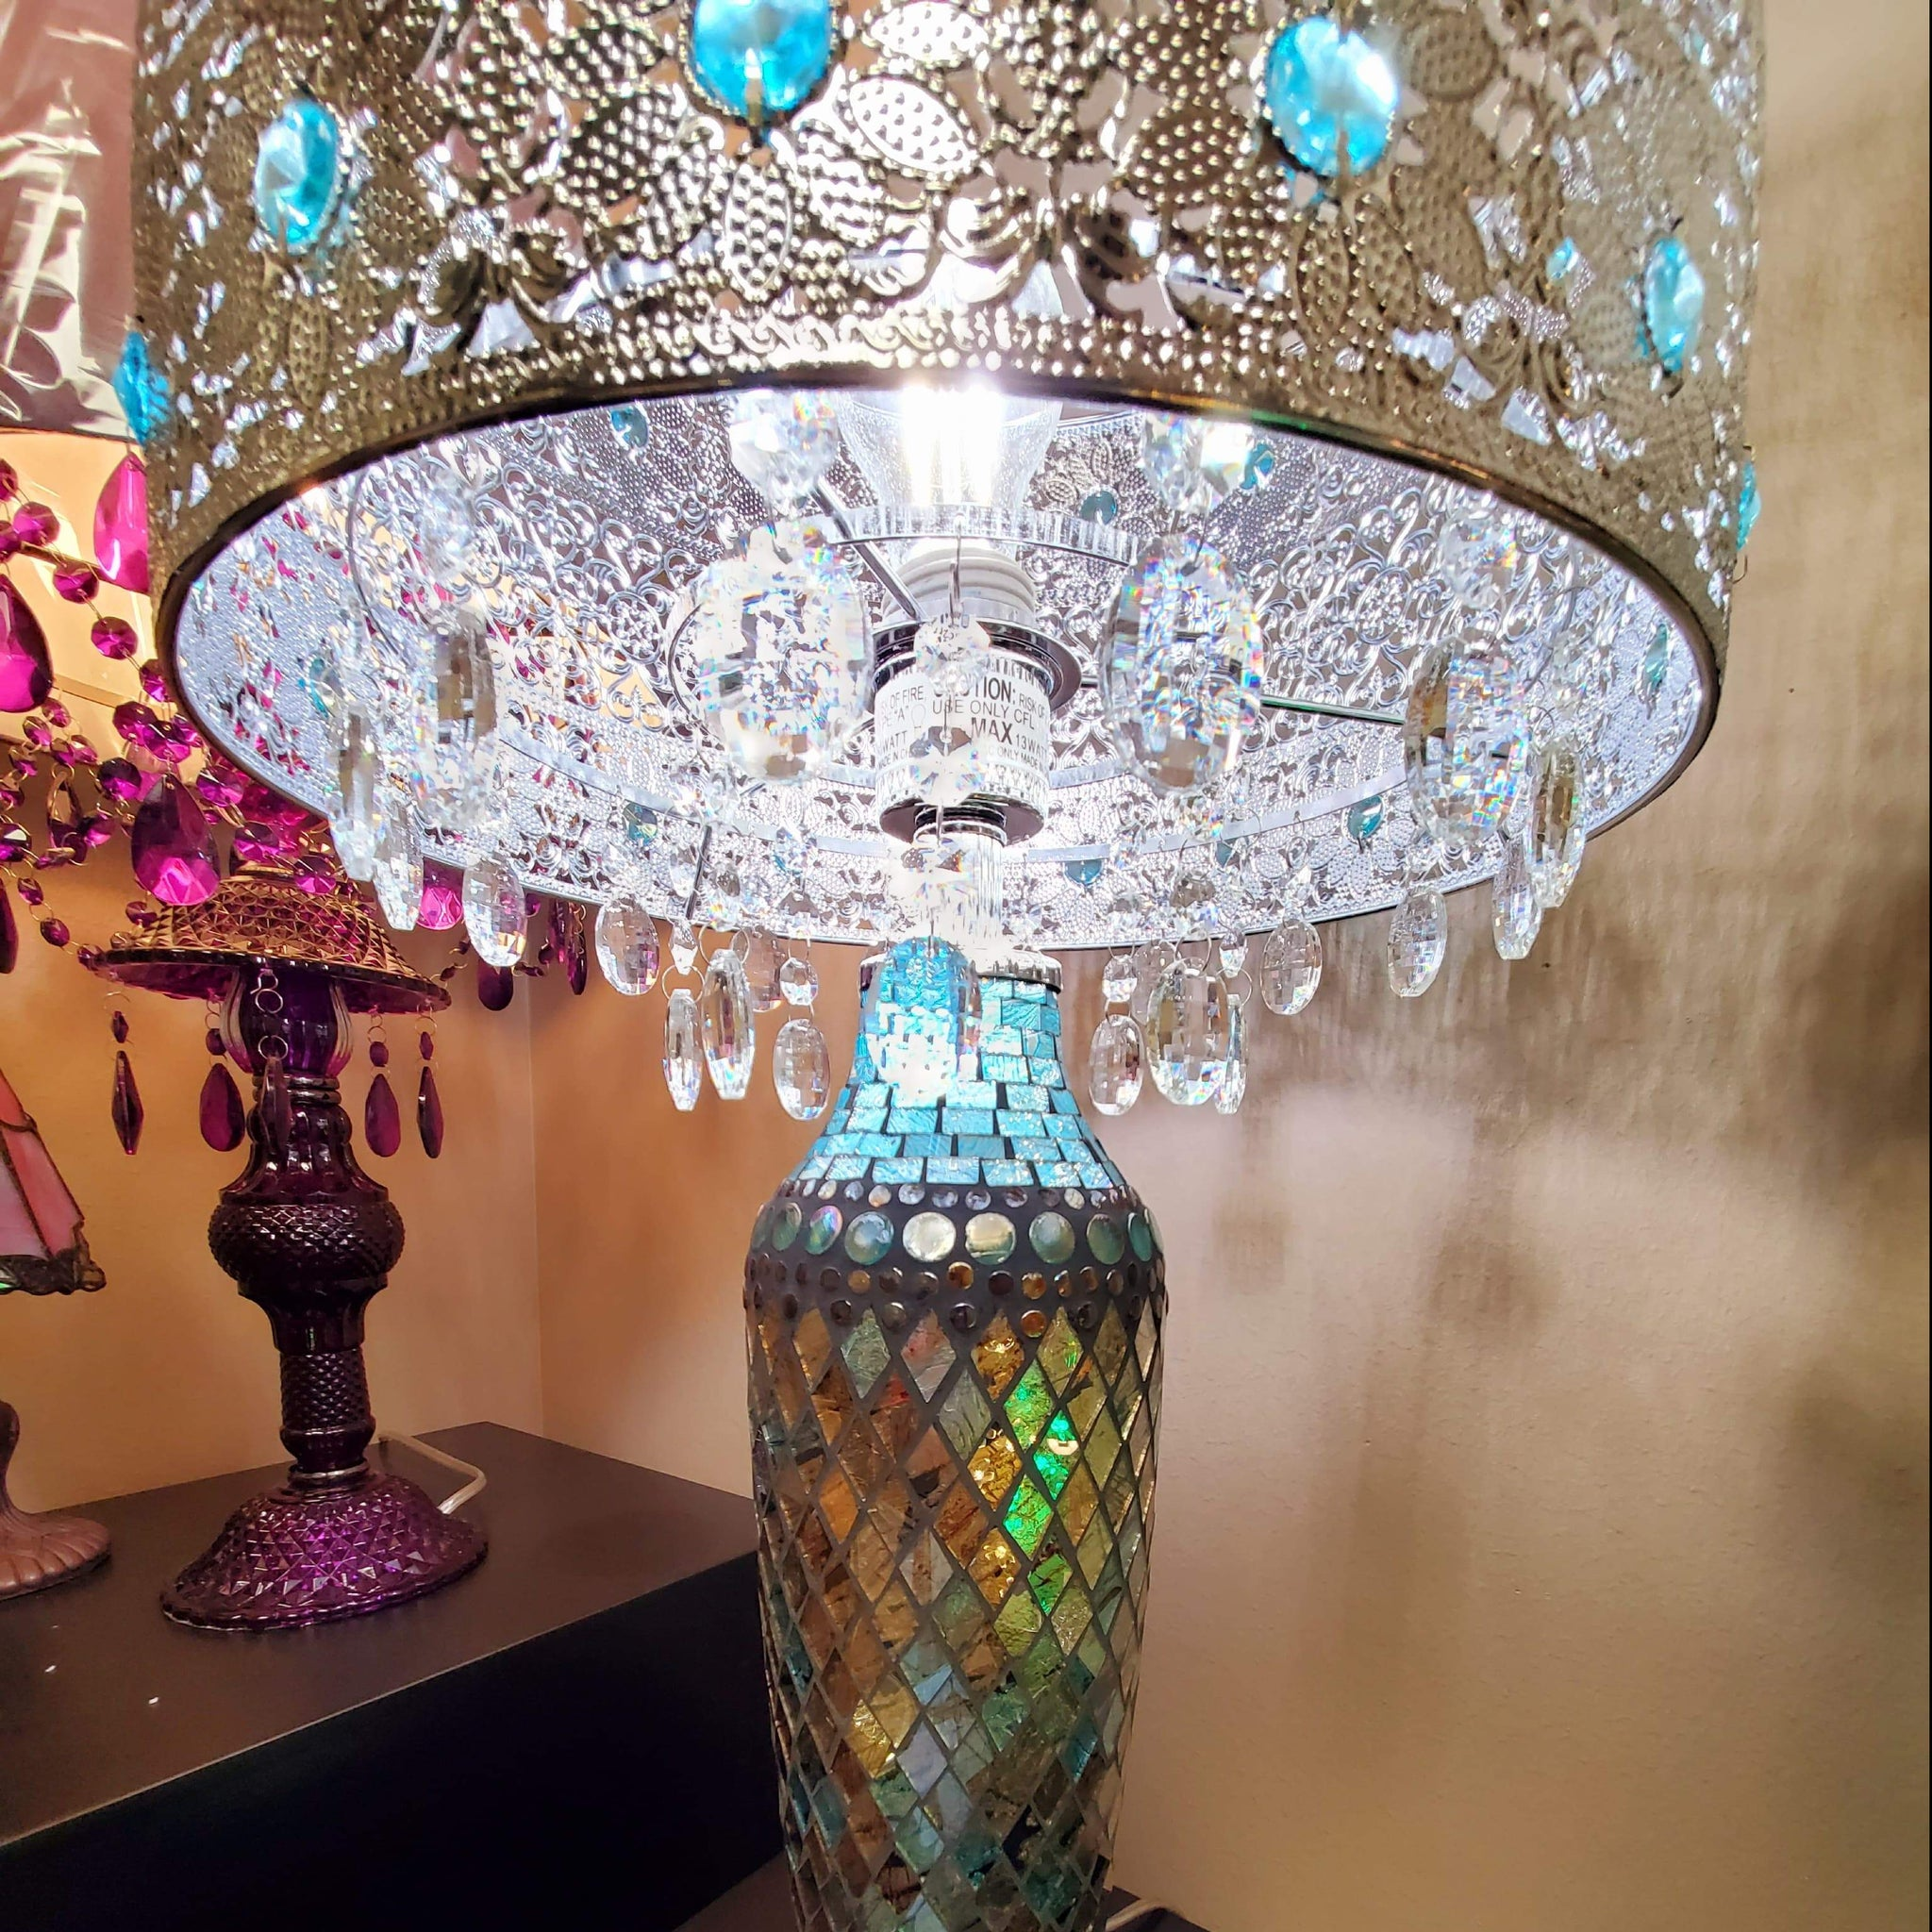 24 25 In Turquoise Table Lamp With Gloria S Crystal Beaded Shade And Mosaic Base River Of Goods 15296s Home Decorators Outlet